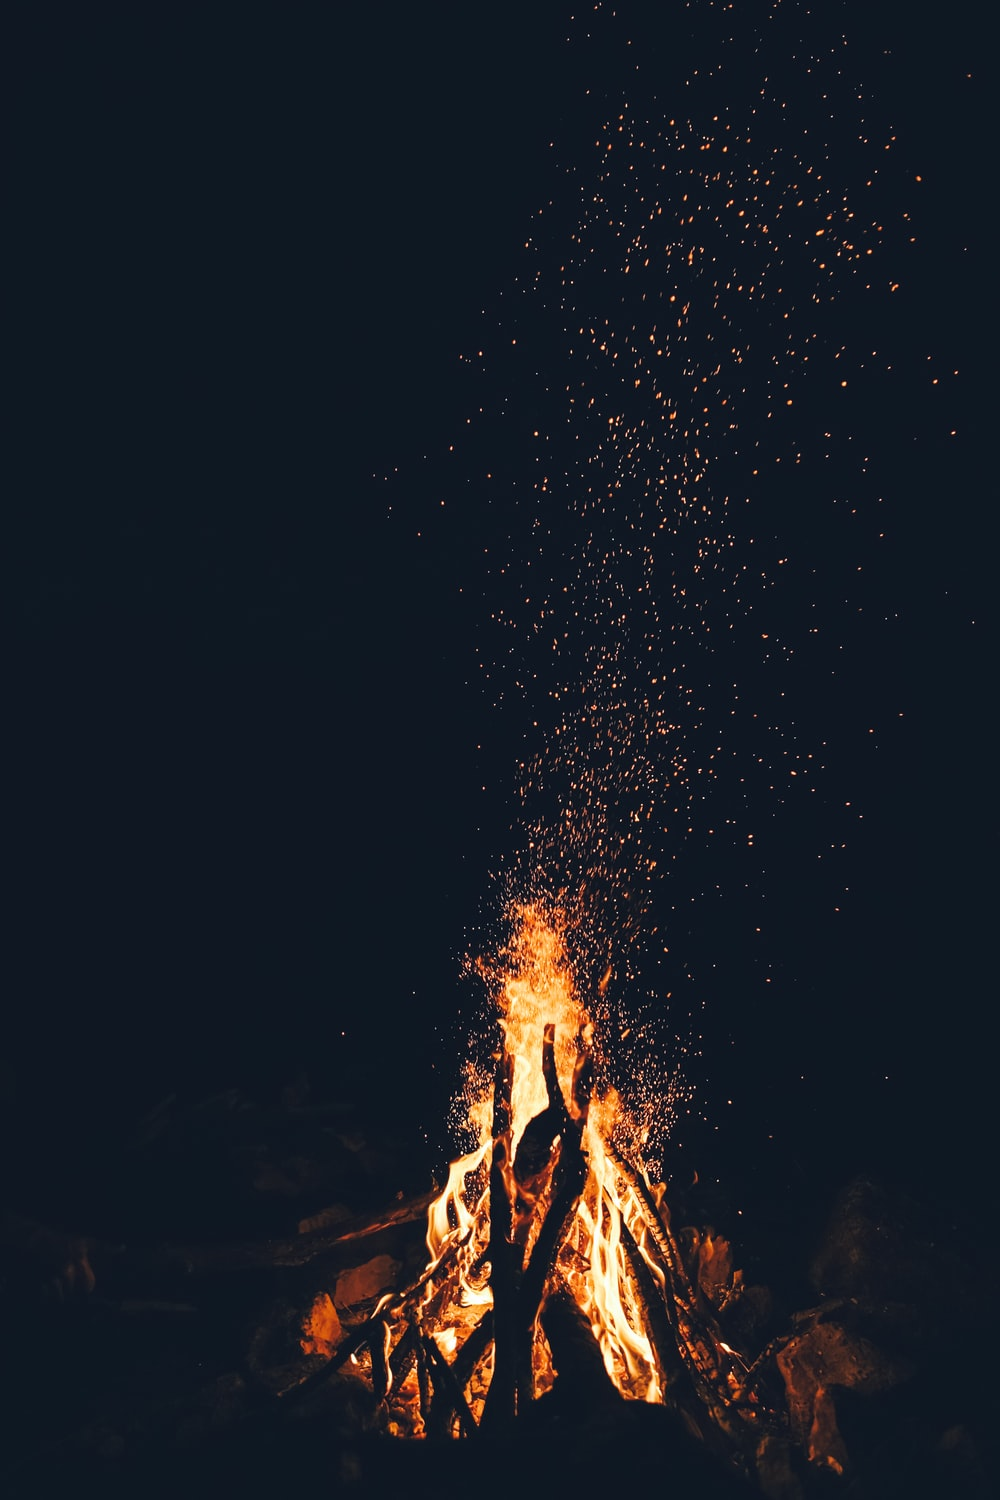 500 Best Campfire Pictures Hd Download Free Images On Unsplash